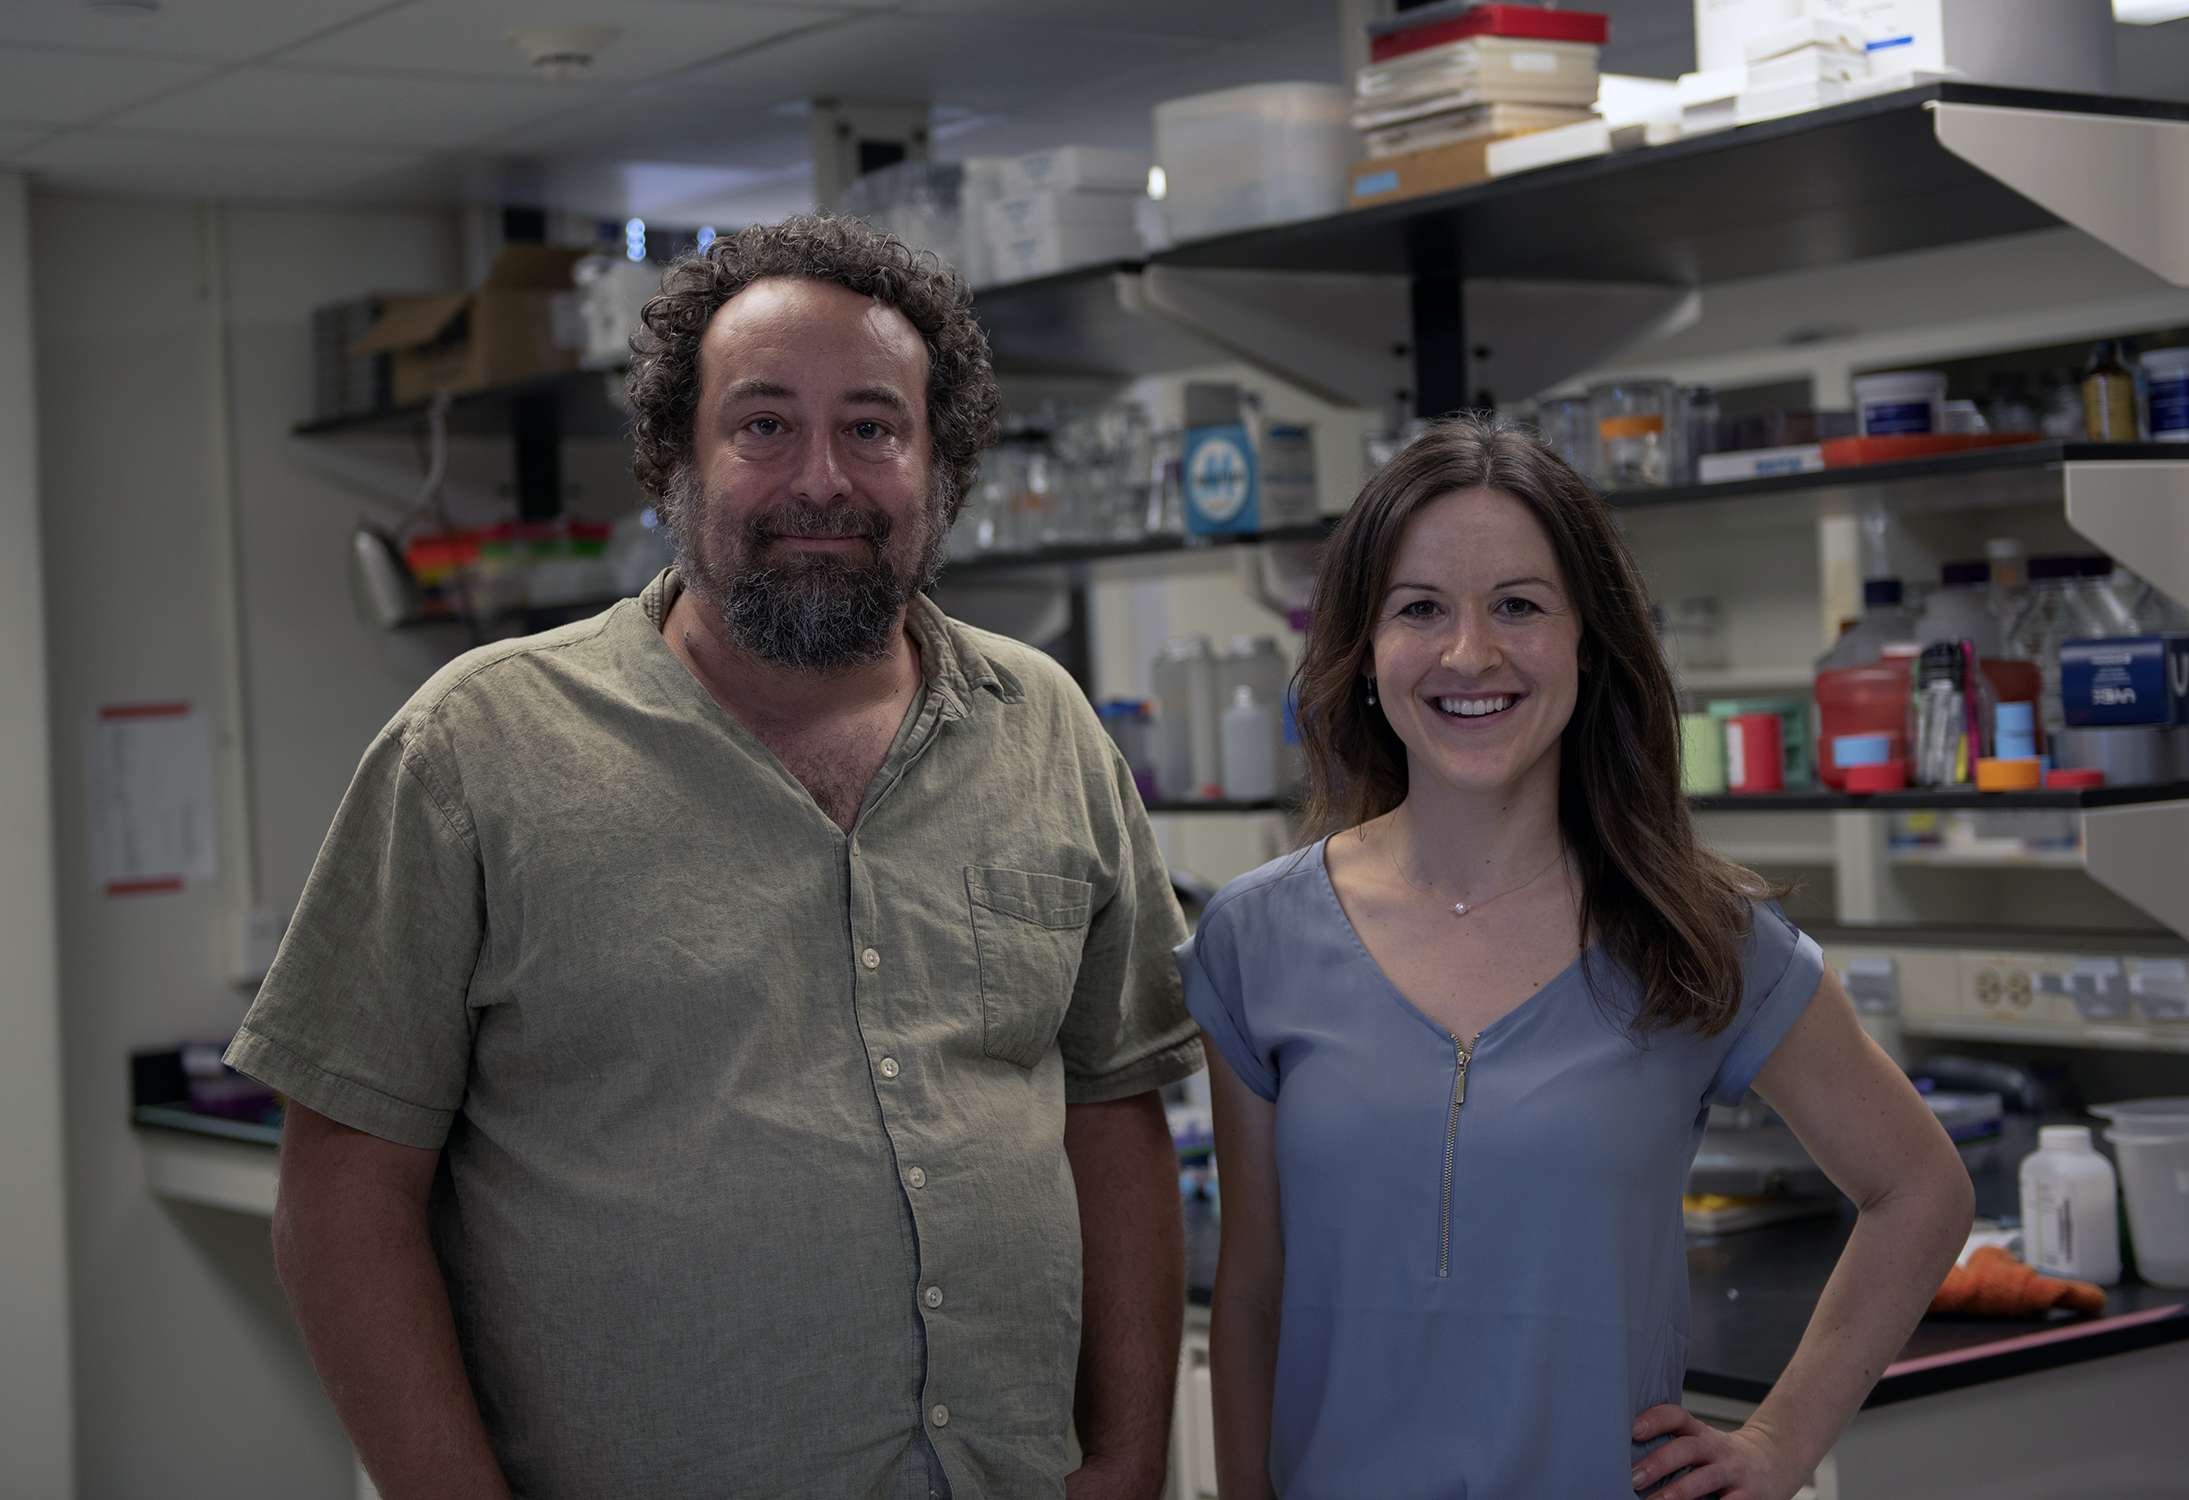 Science graduate student Lisa Bryan smiles alongside Dr. Gil Rosenthal in his lab